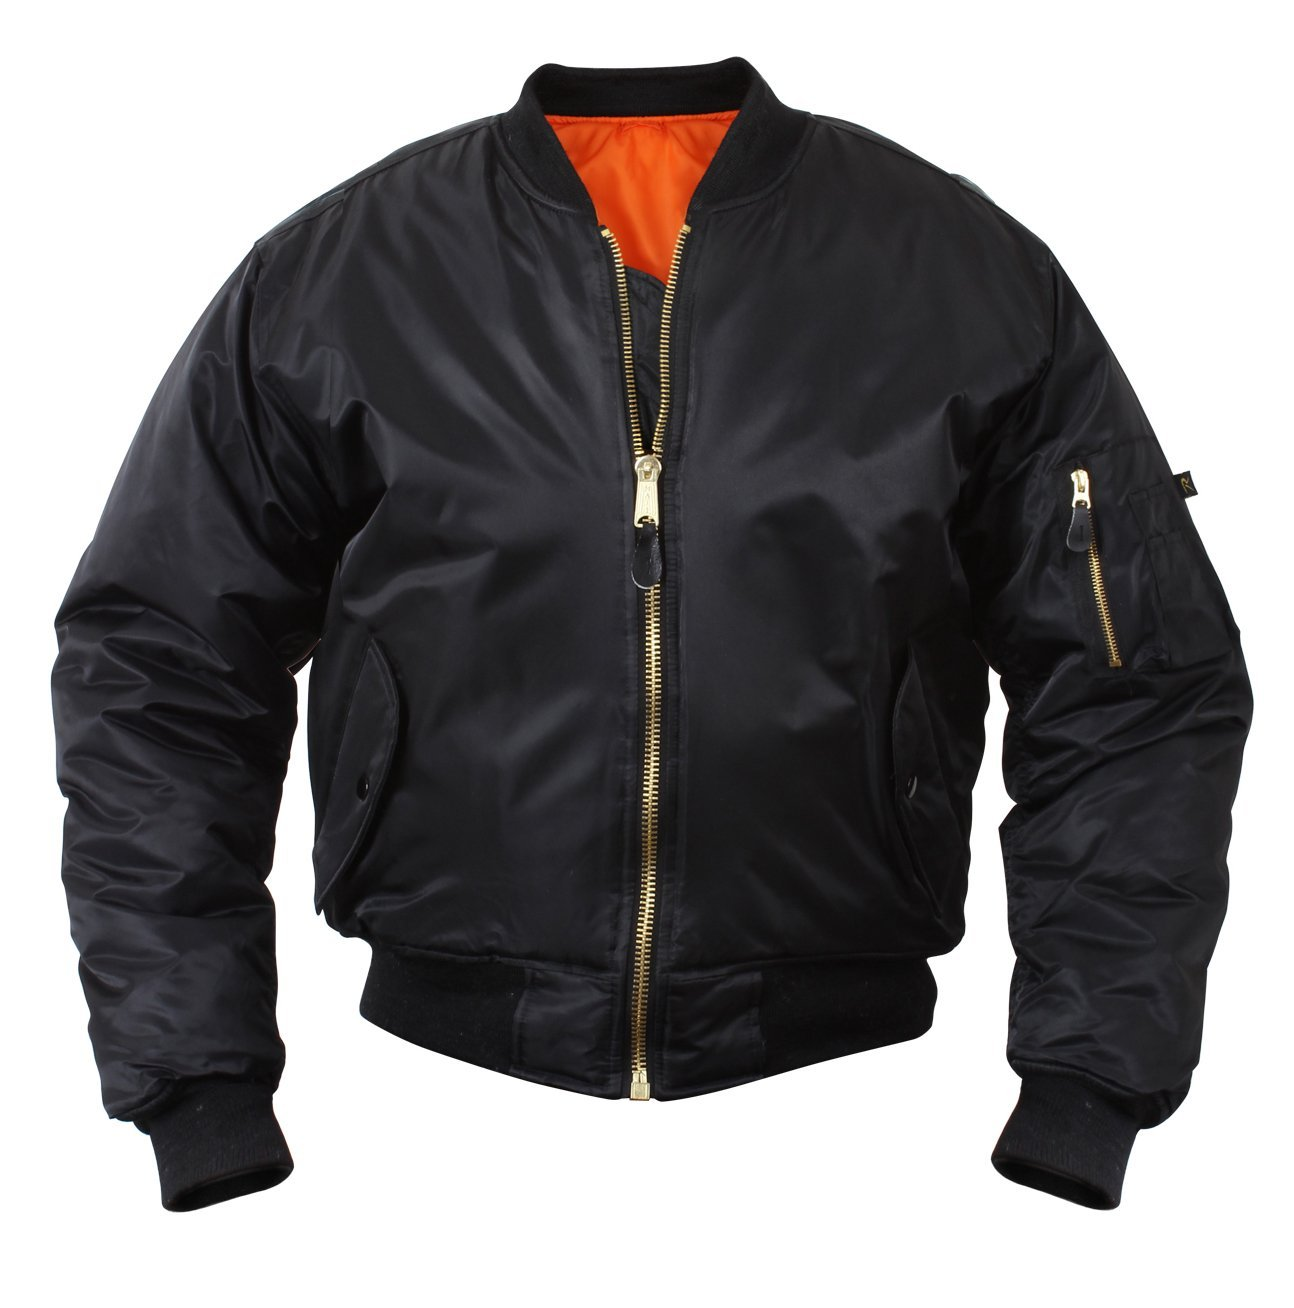 rothco-ma-1-flight-jacket